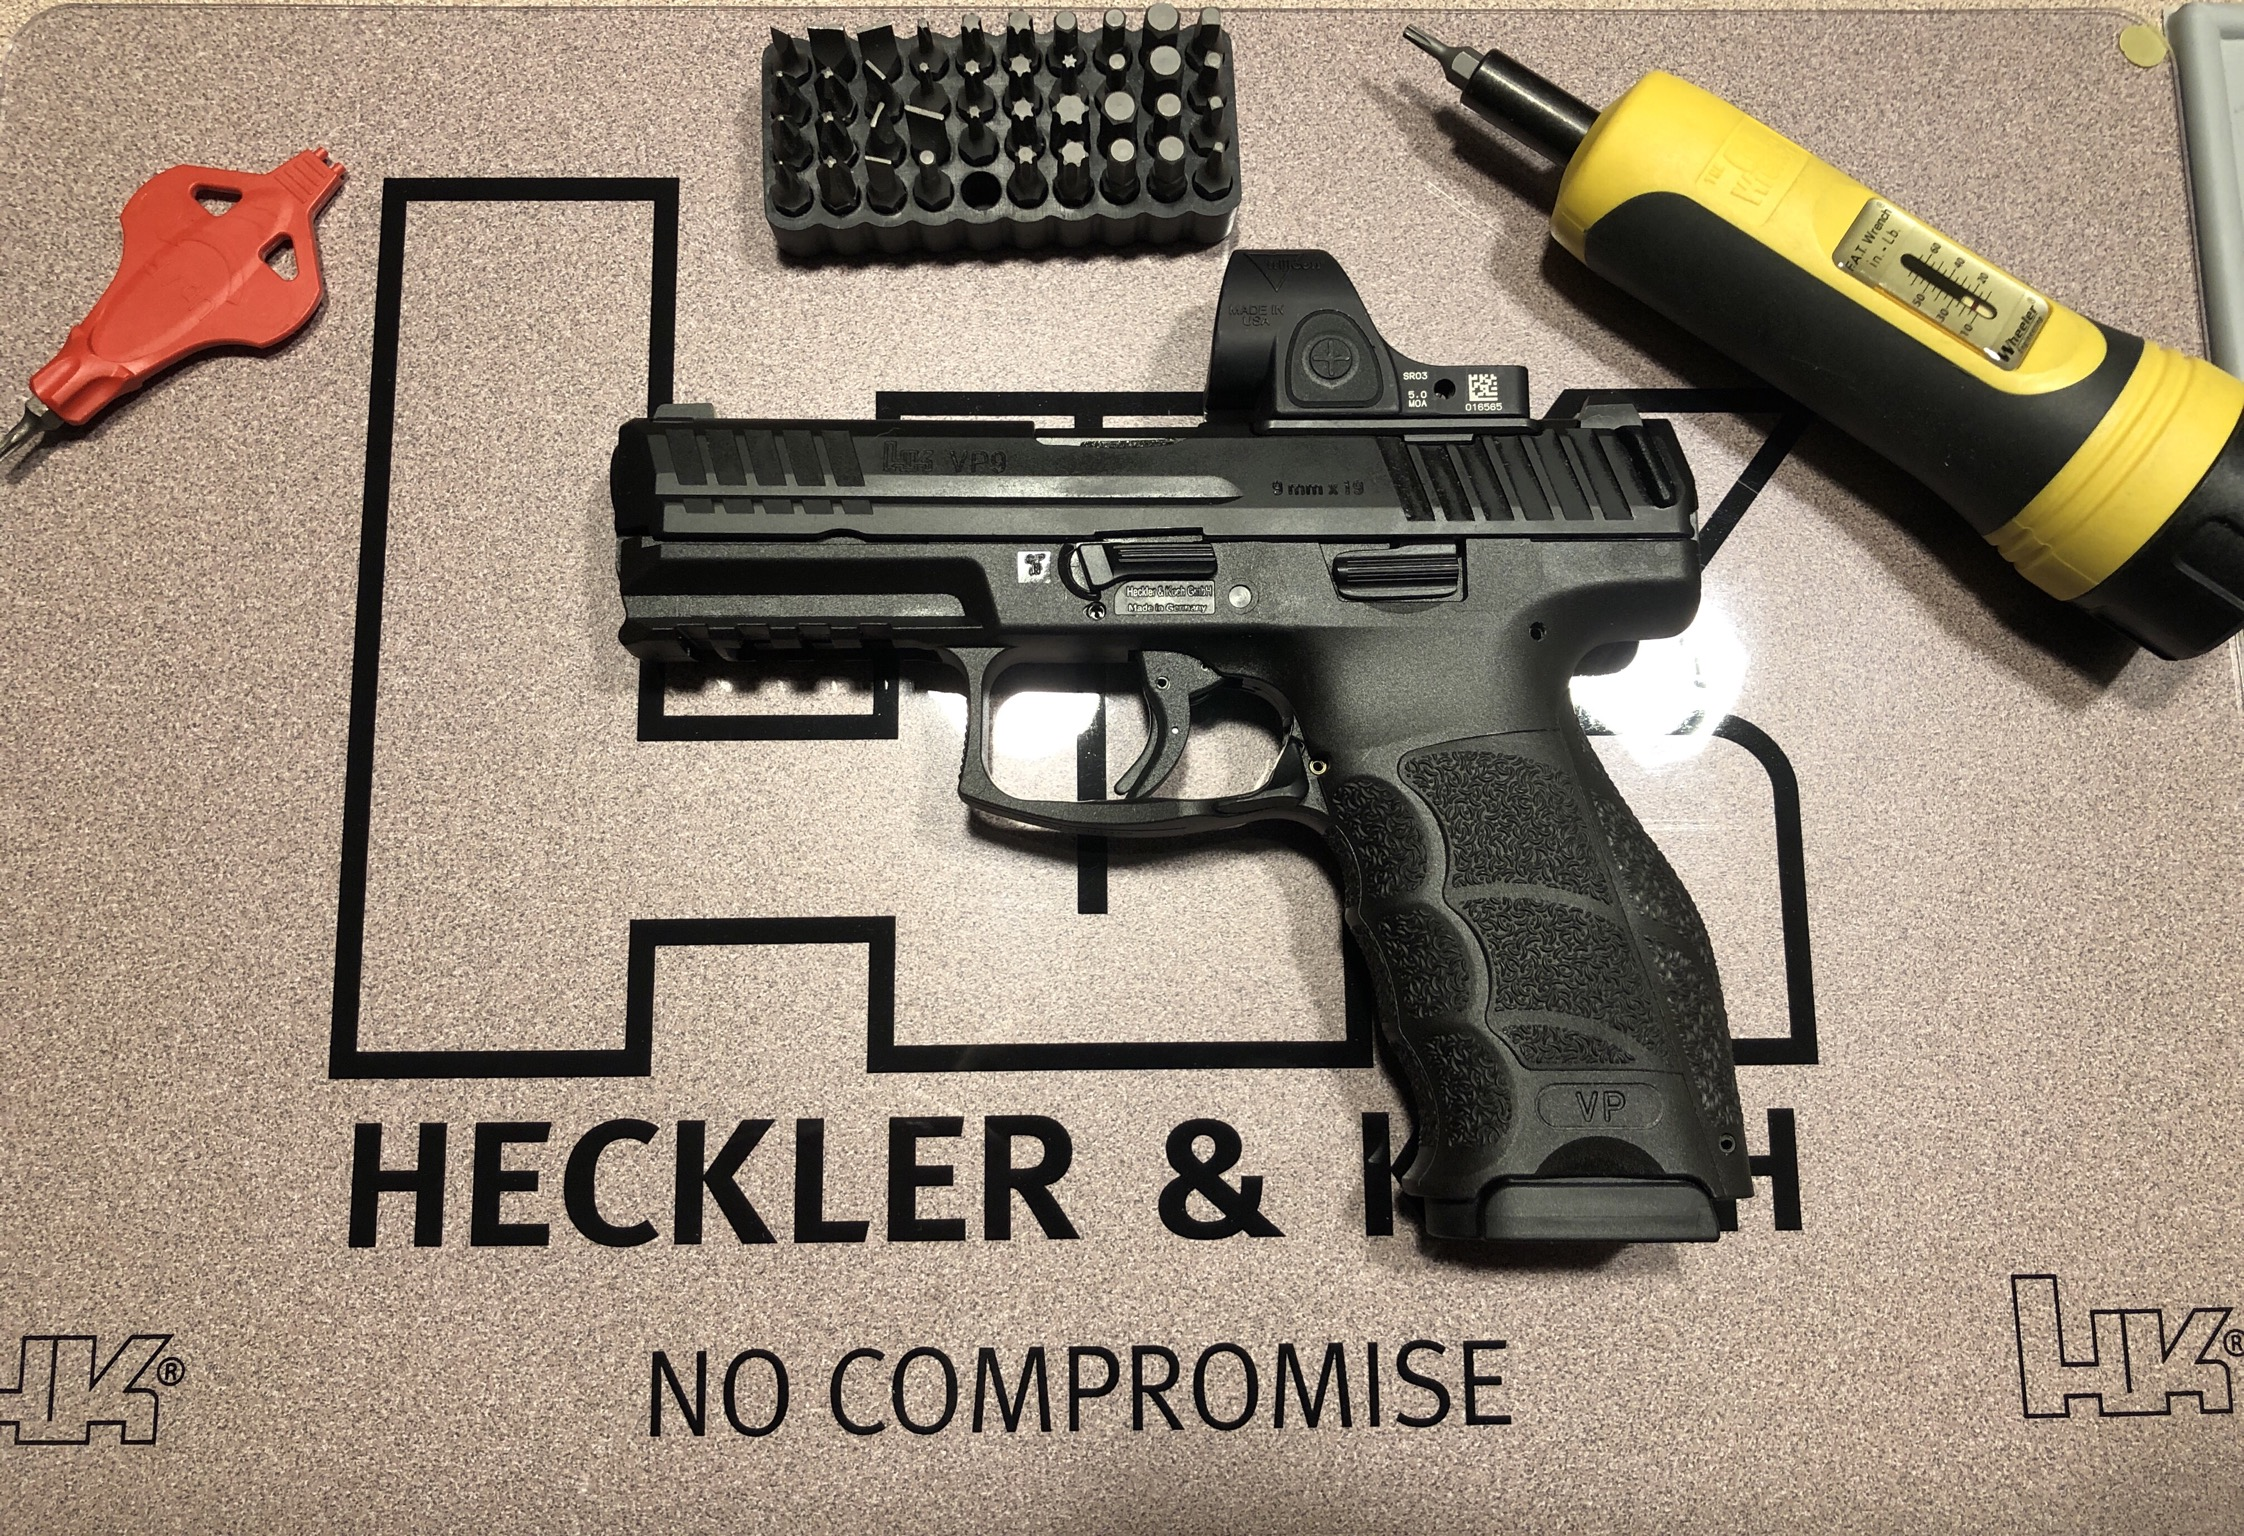 What did you do to your Heckler & Koch pistol today?-c1bf78e3-fdbd-4508-8168-58fc0d51d2a7.jpeg